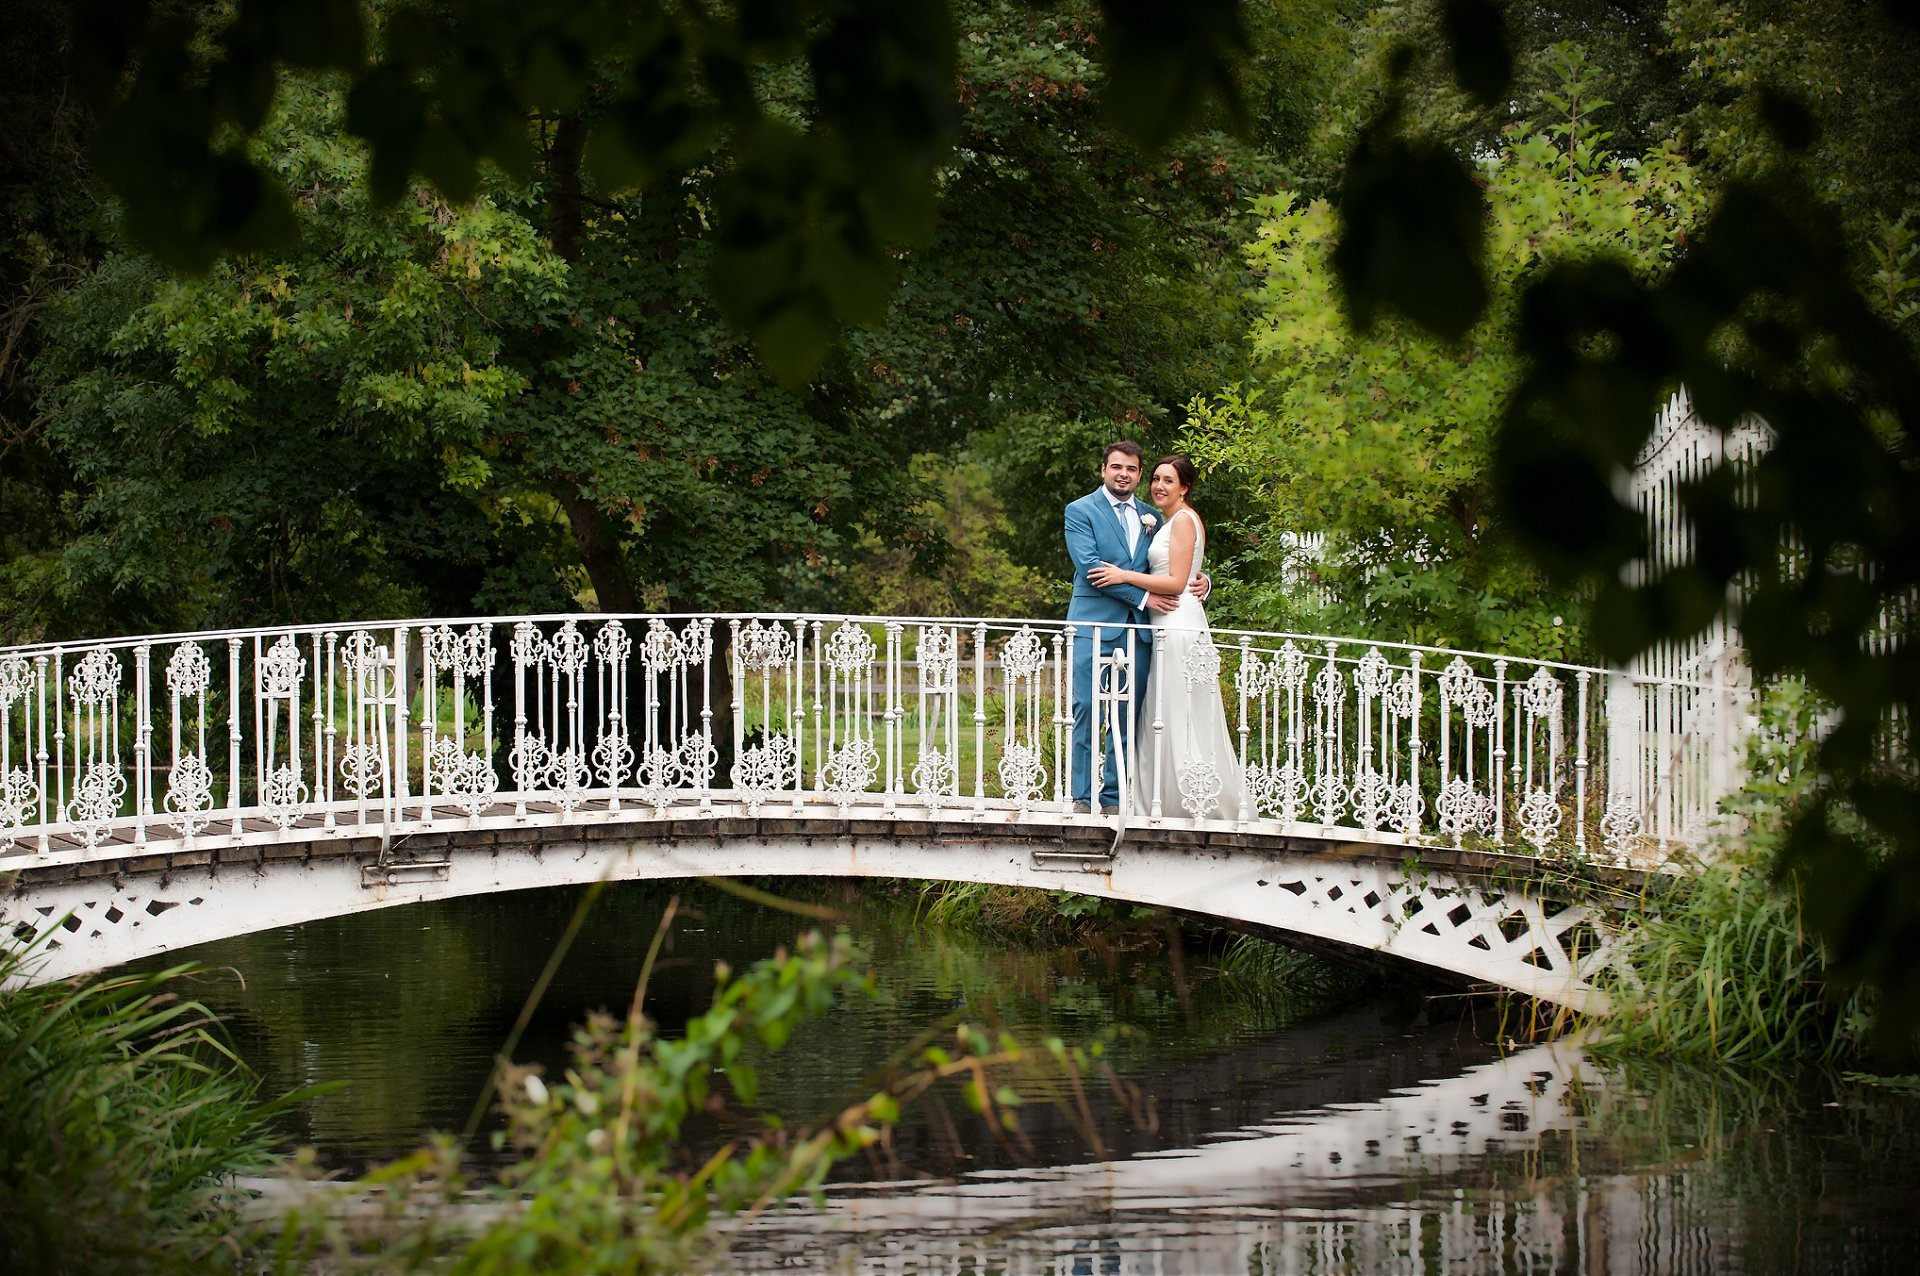 Morden Hall Wedding Photographer on the stunning white bridge which makes a wonderful backdrop for photographs